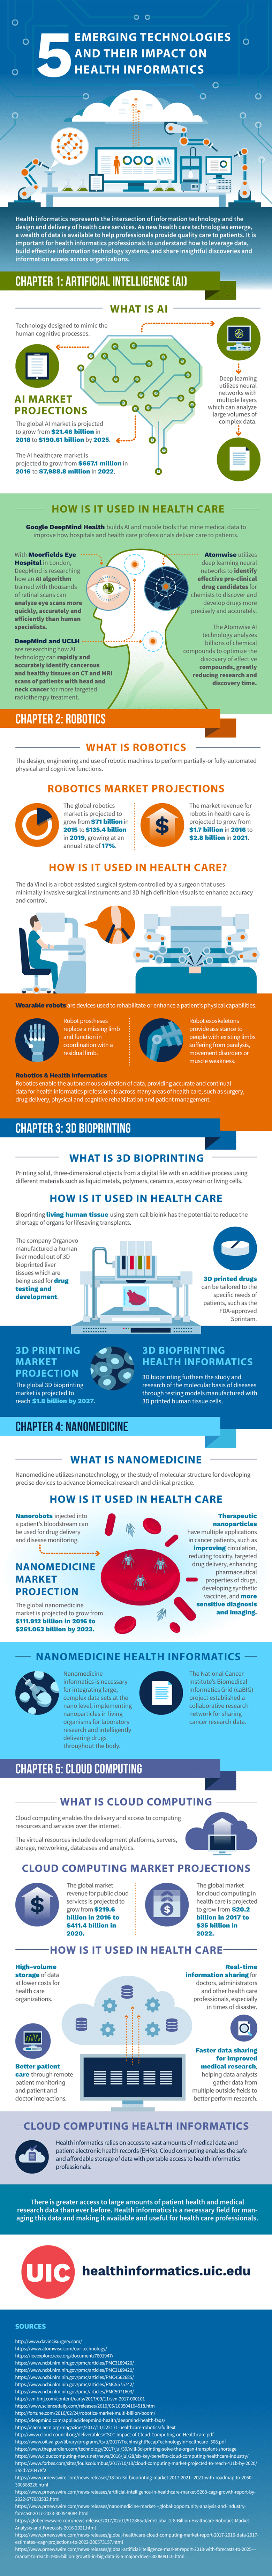 Infographic on 5 Emerging Technologies and the Impact on Health Informatics